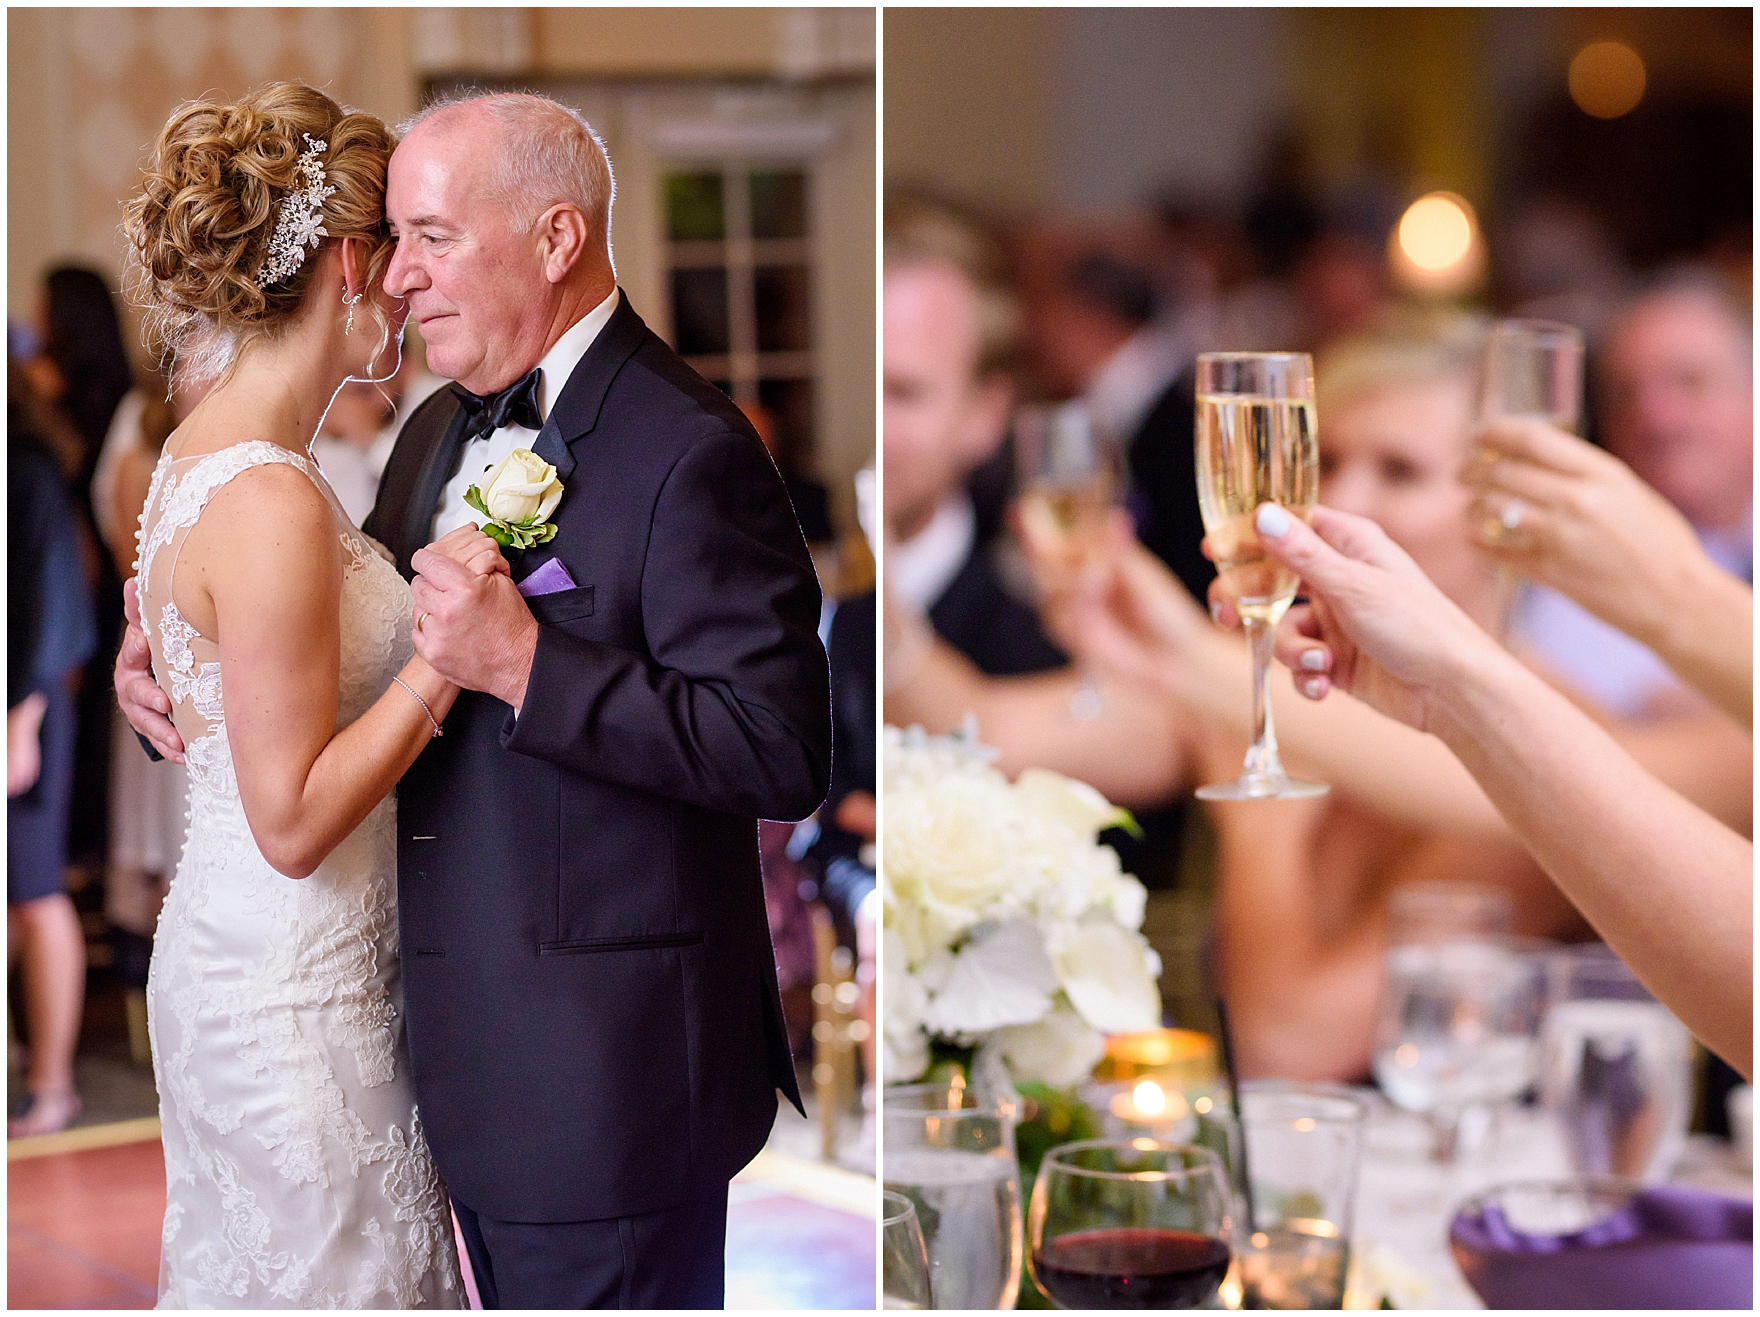 The bride dances with her father during a Glen Club Glenview Illinois wedding.